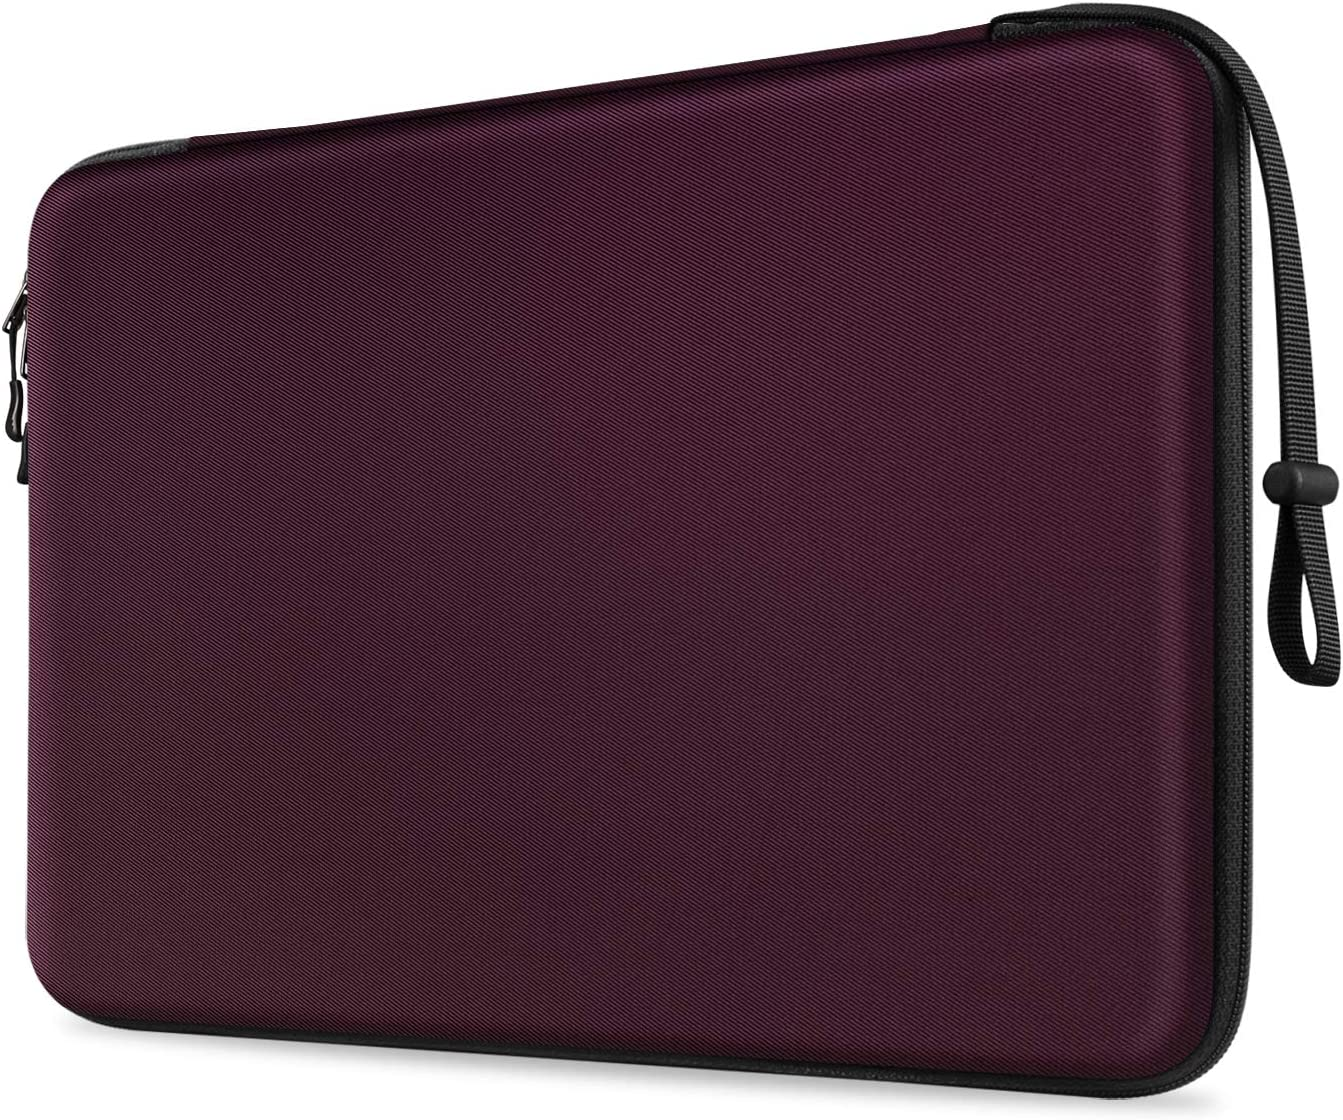 FINPAC 13-inch Hard Laptop Sleeve Compatible for 13.3'' MacBook Air/Pro, Shockproof Computer Laptop Carrying Case for Dell Inspiron 13/XPS 13, Surface Laptop, HP, Acer, Samsung(Z- Burgundy)